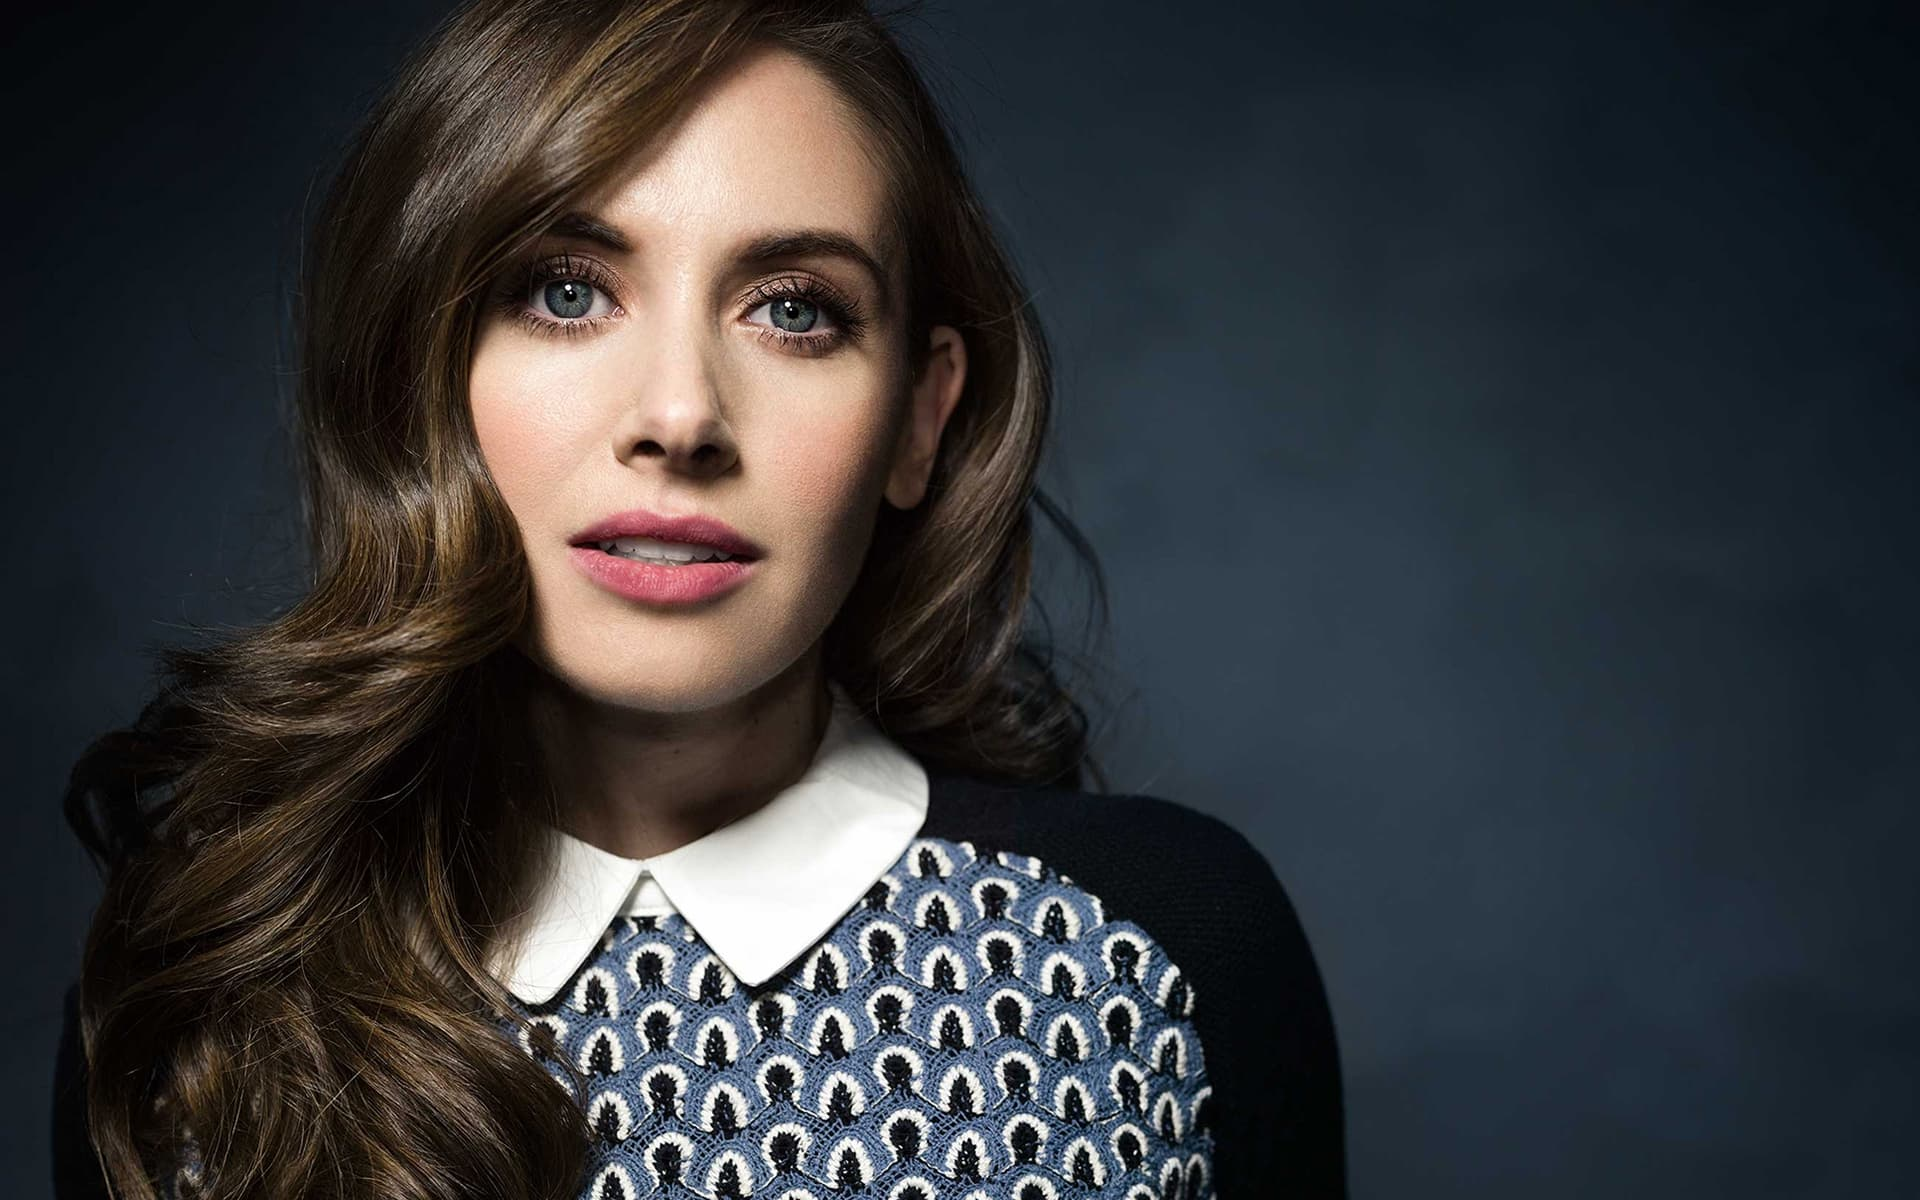 Alison Brie Wallpapers - Wallpaper Cave